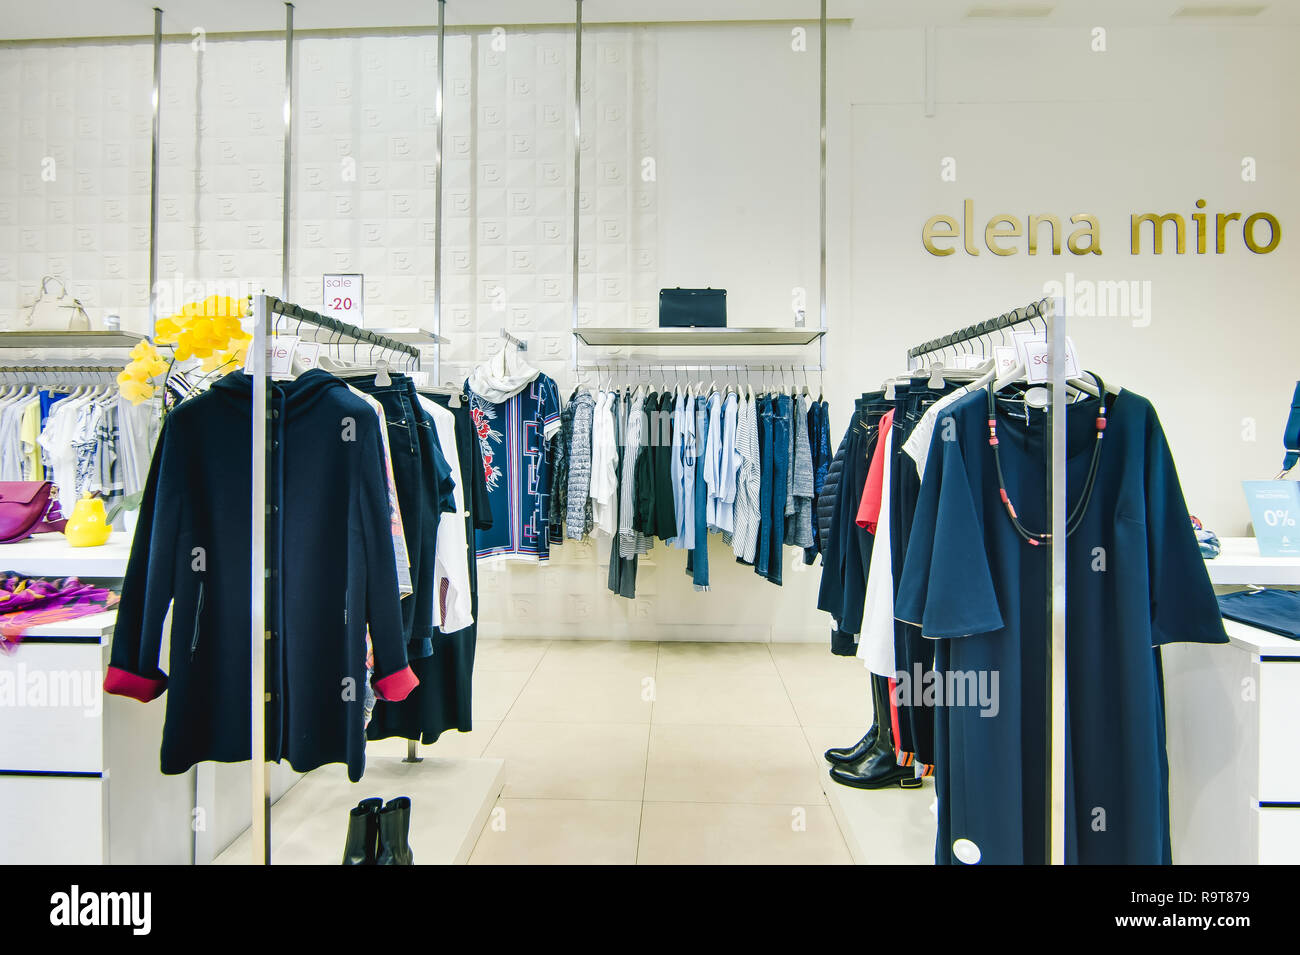 7a302f278c6 Russia, Novosibirsk - April 25, 2018: interior of women's clothing and  accessories store boutique EMPORIO · Evgeniy Kleymenov / Alamy Stock Photo